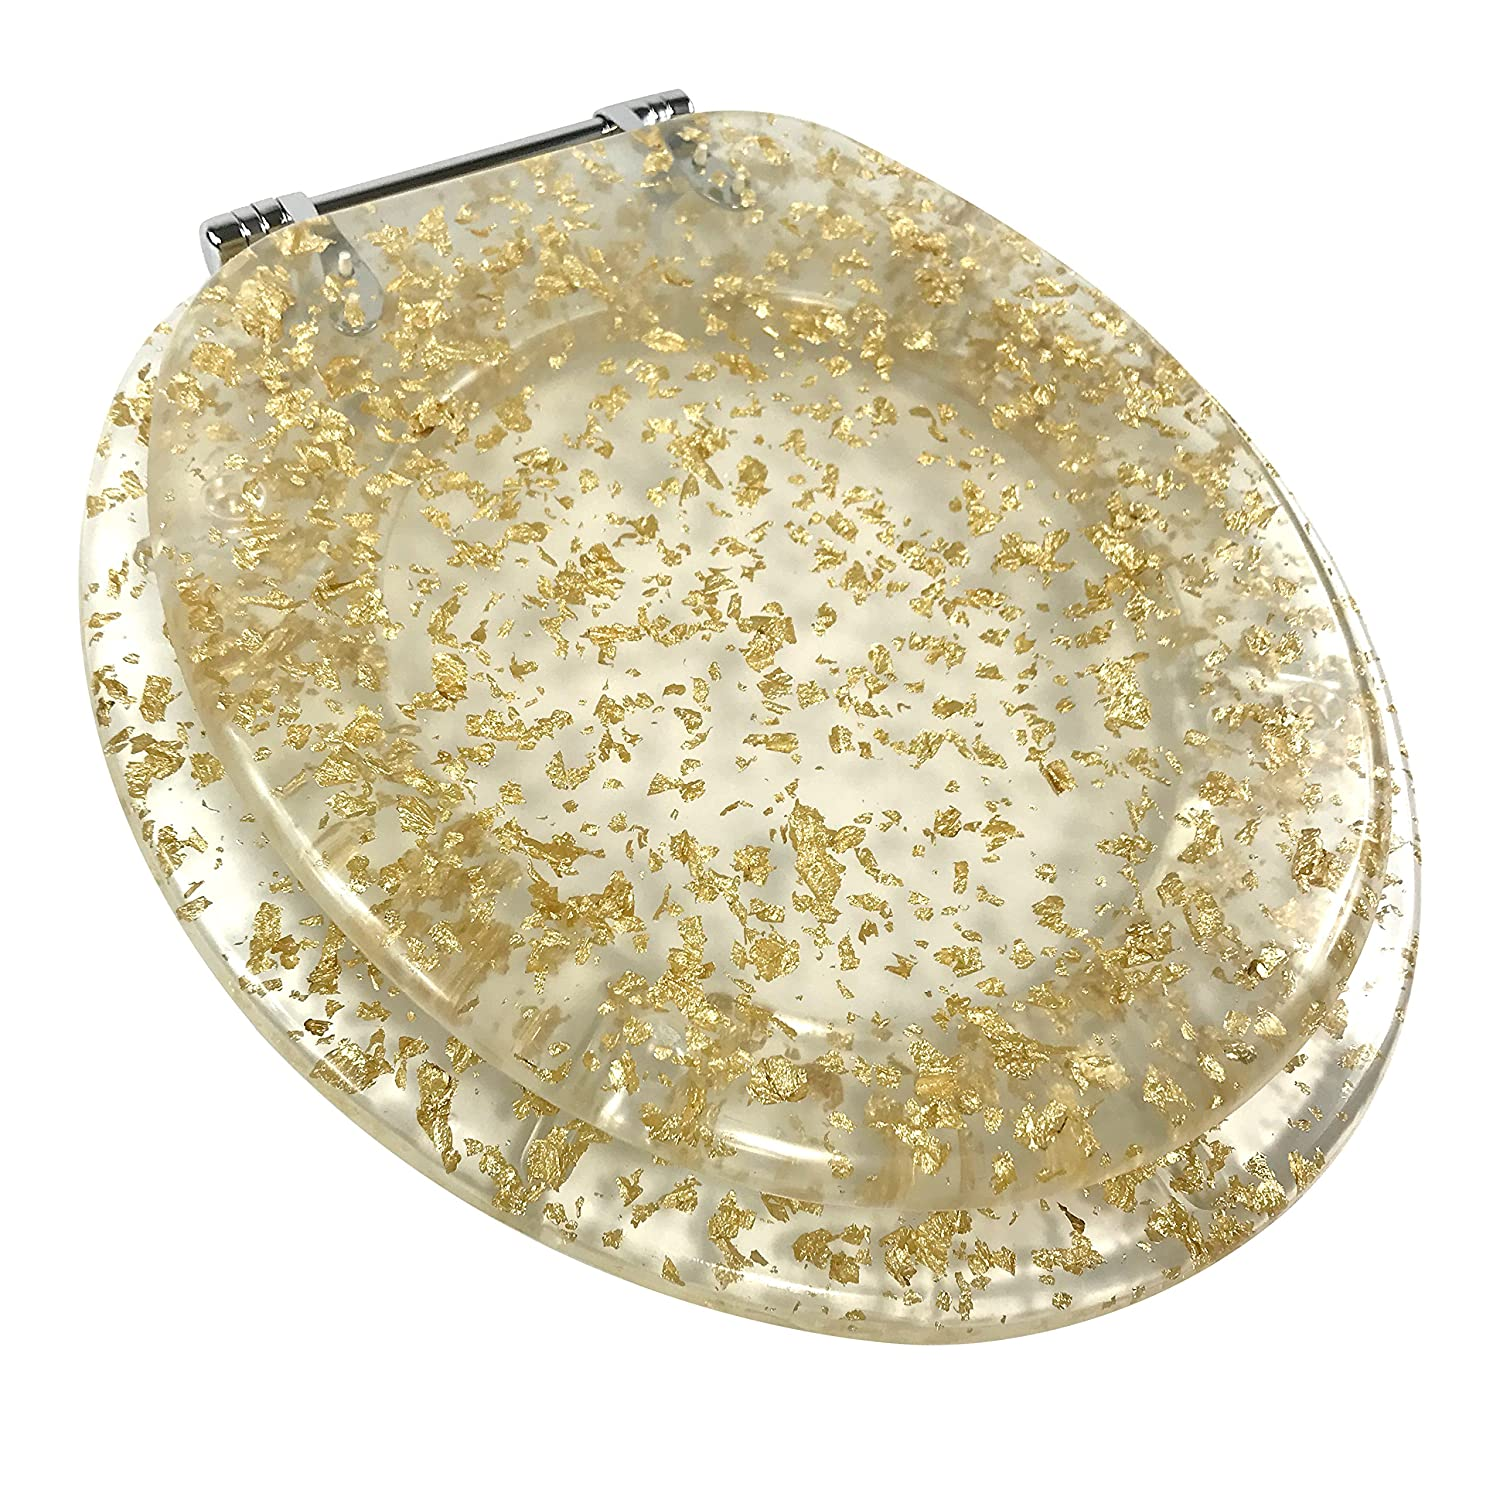 Ginsey Standard Resin Toilet Seat with Chrome Hinges Gold Foil